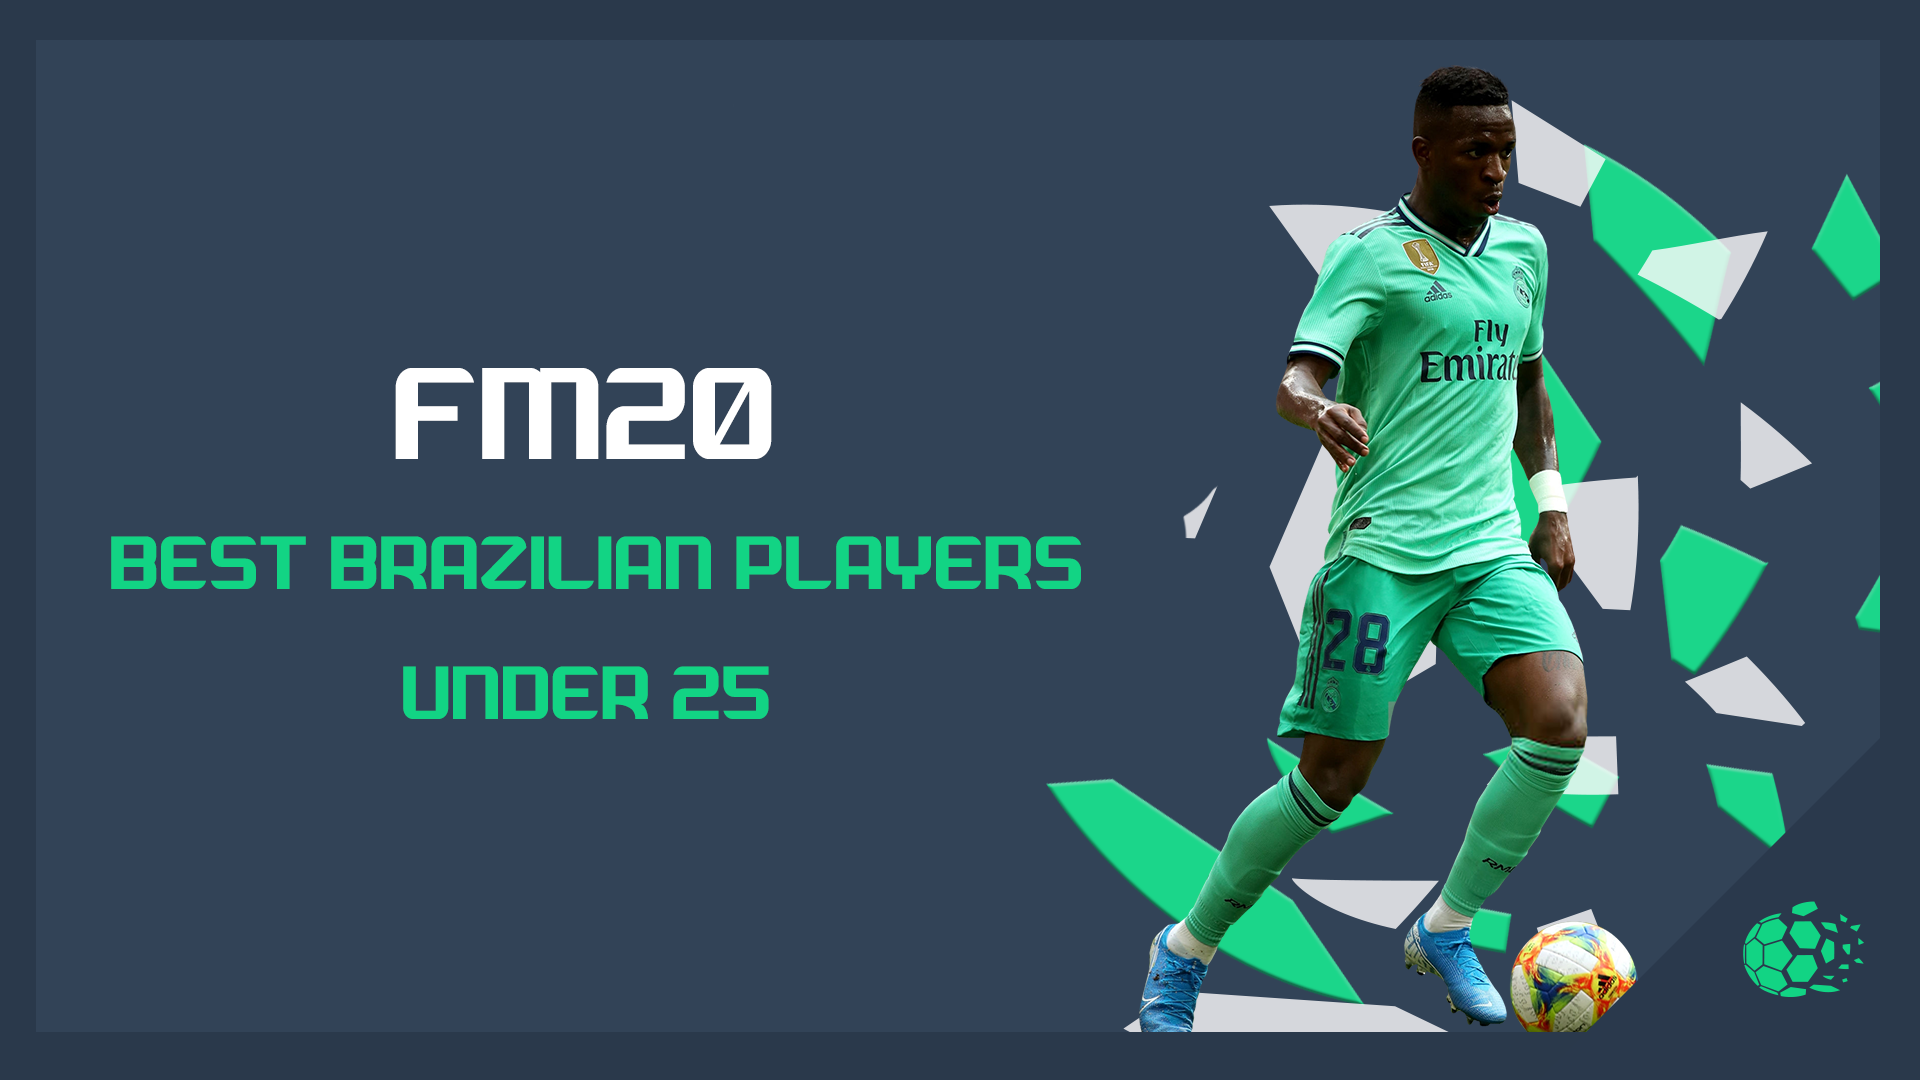 """FM20 FM20: Best U25 Brazilian Players"" feature image"